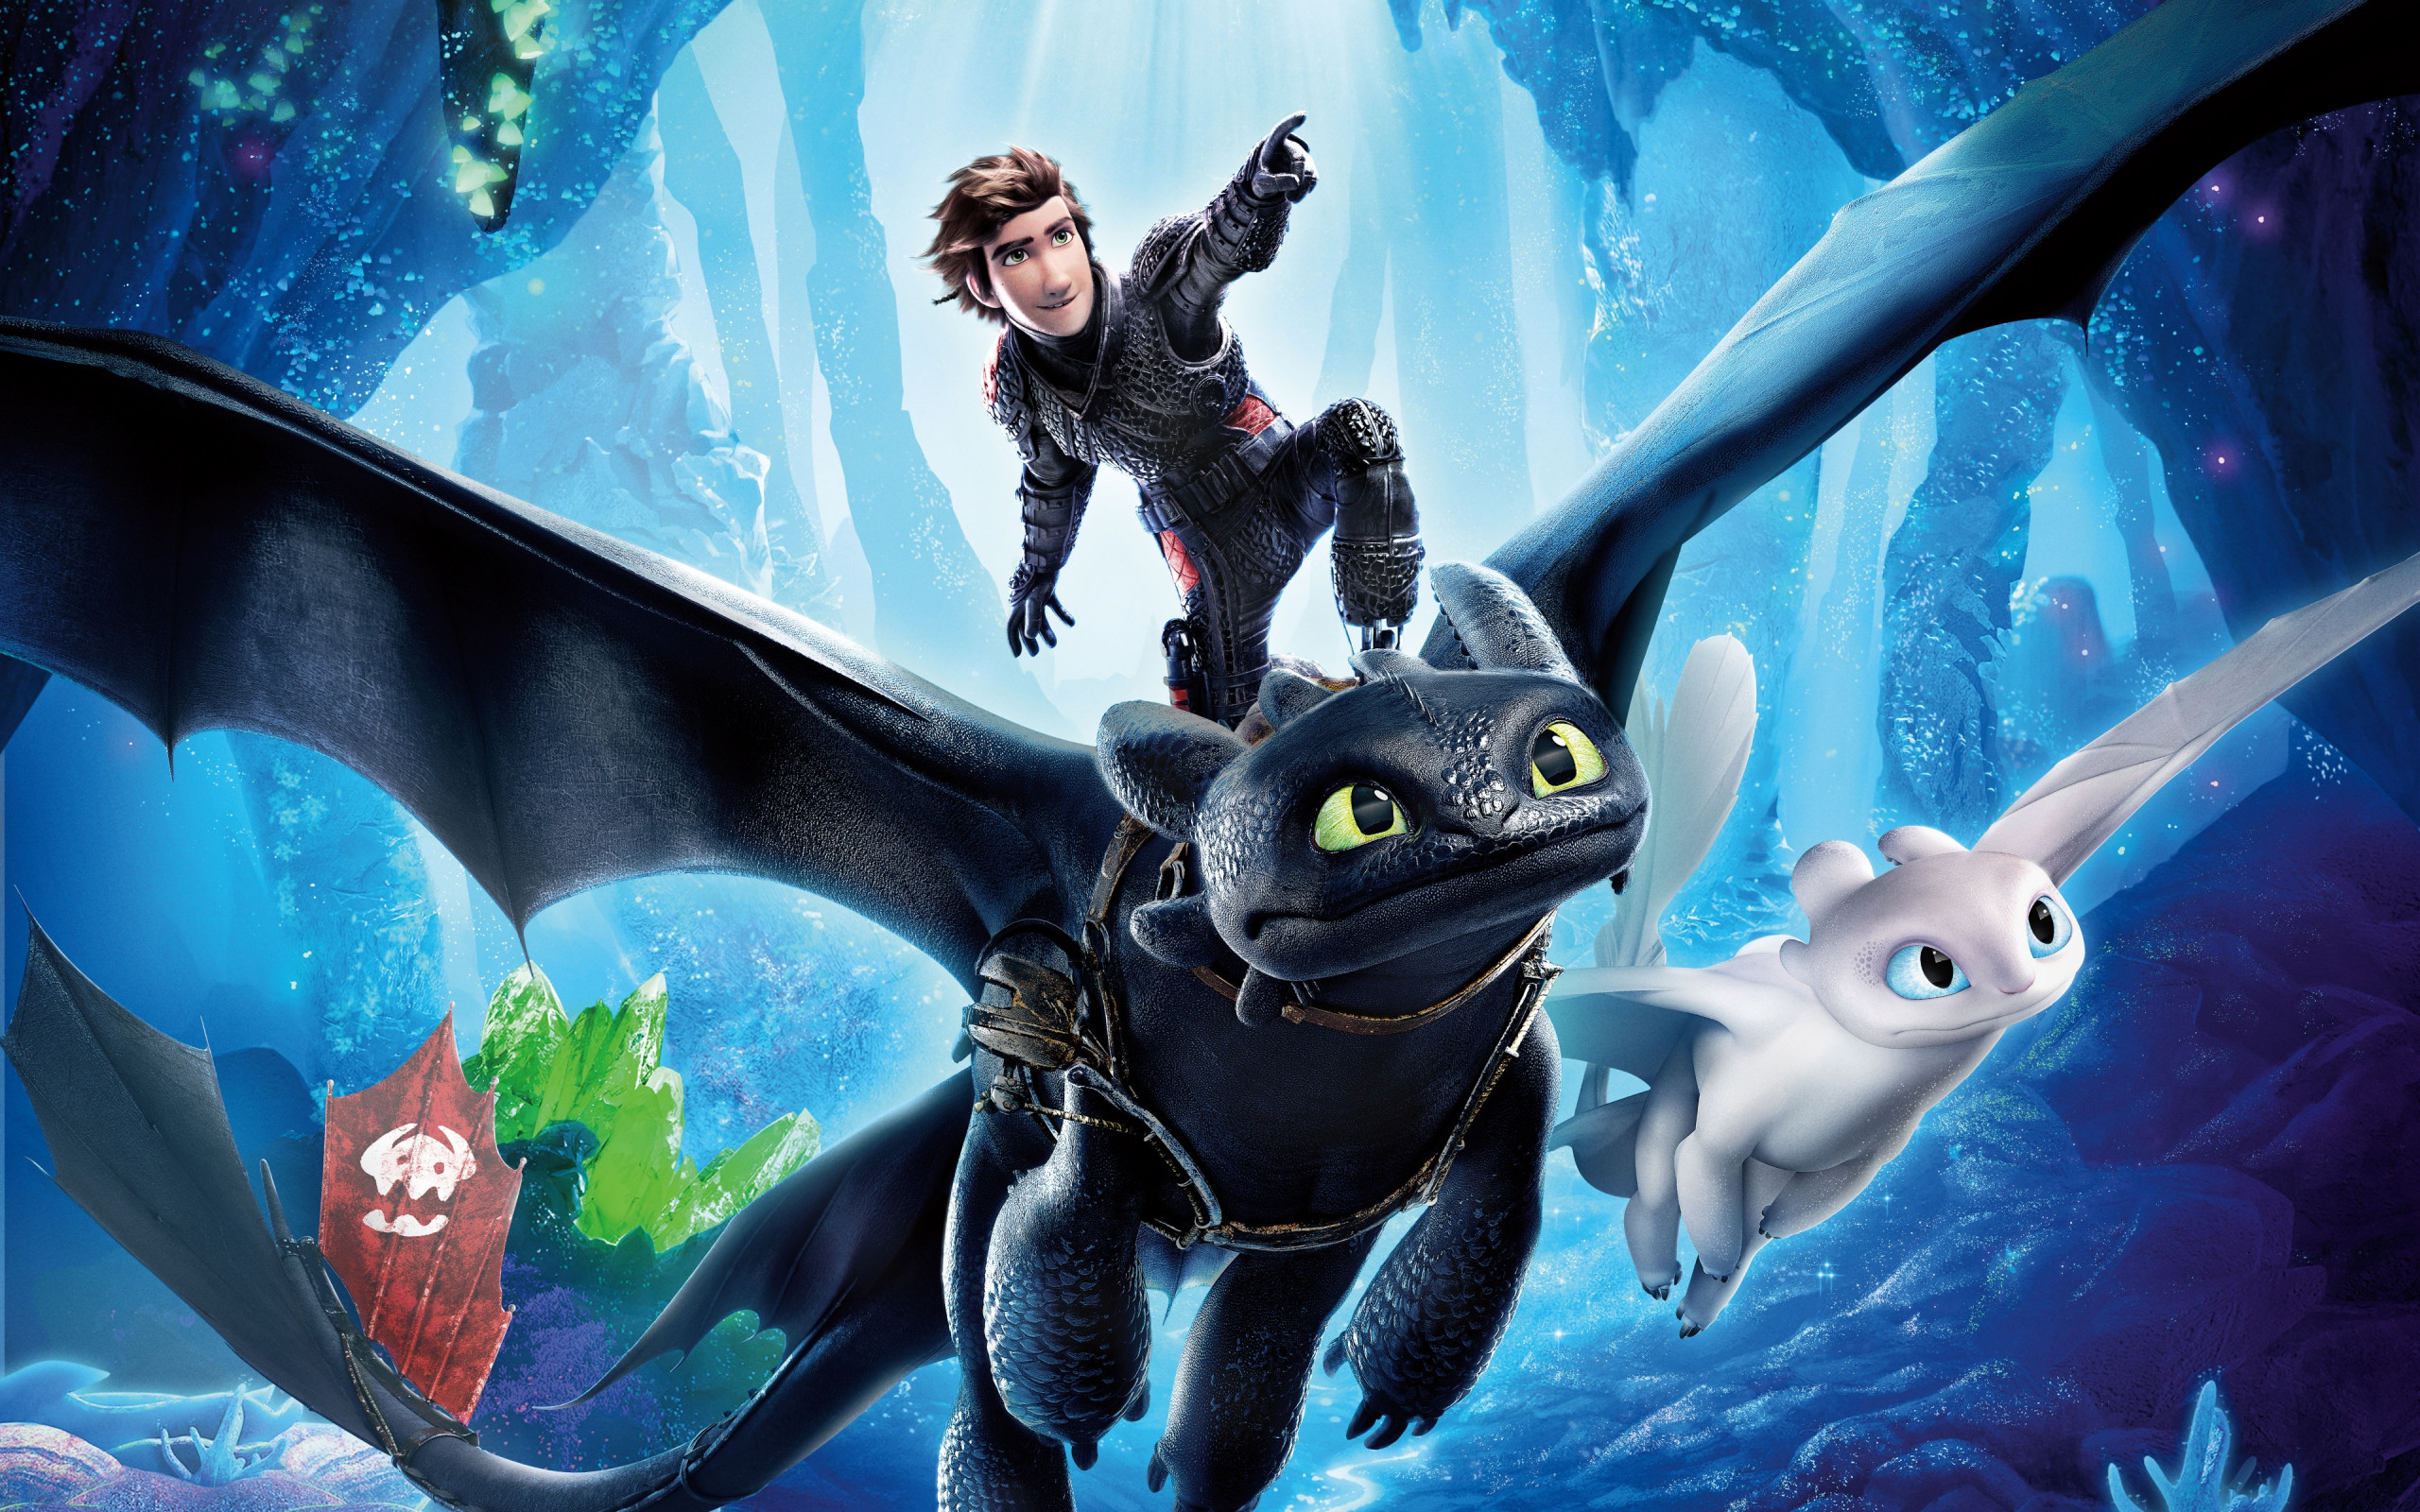 How to Train Your Dragon 2019 wallpaper 2560x1600